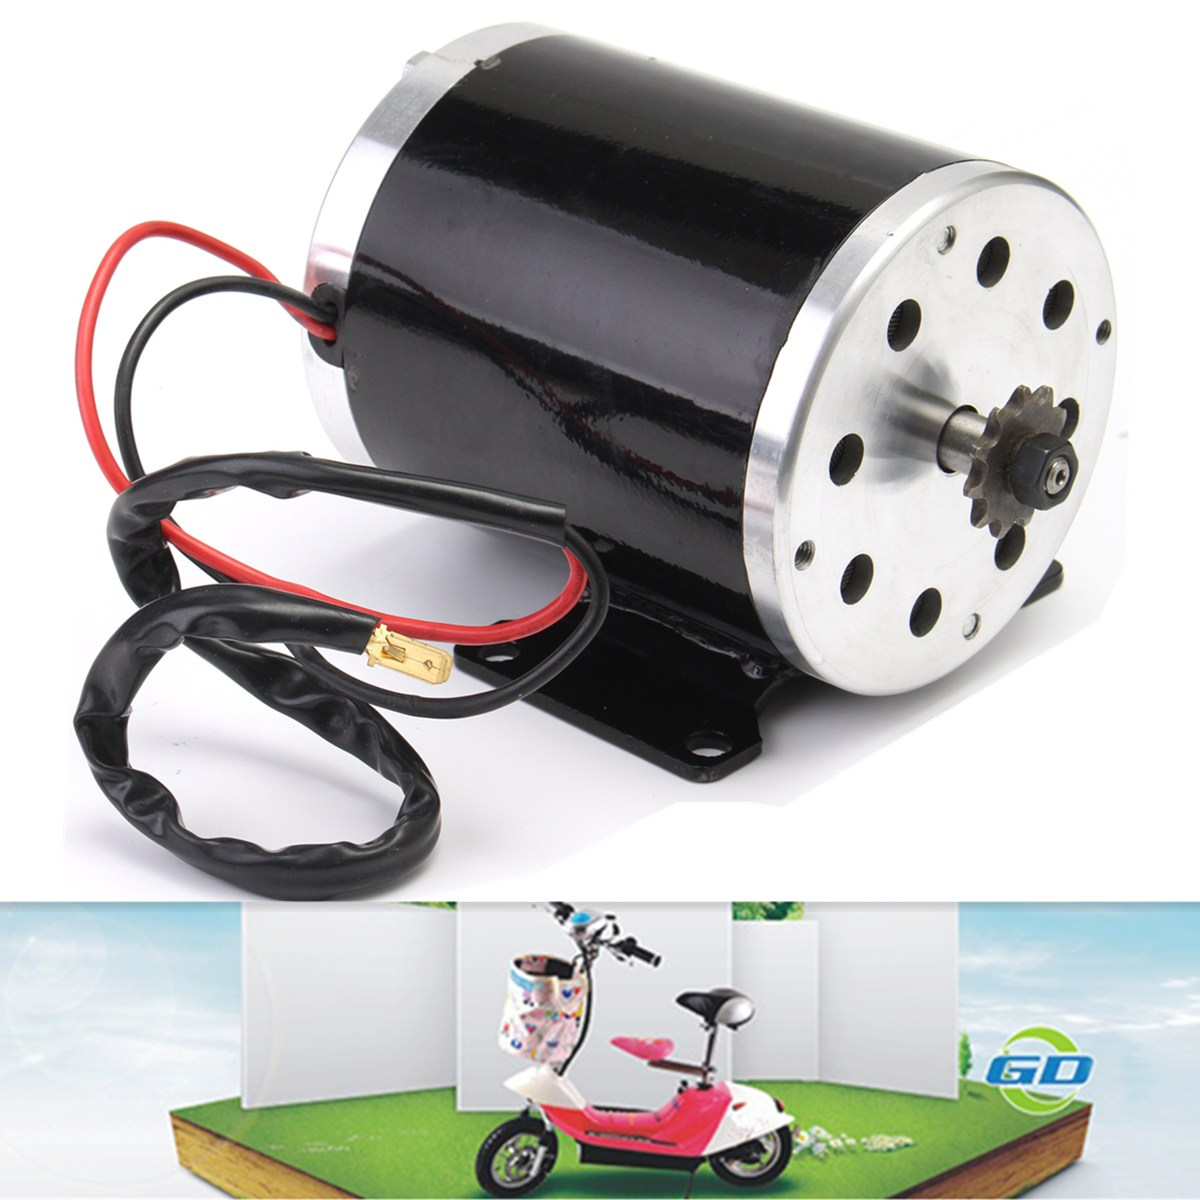 1Pcs 500W 24V DC electric brush ZY1020 Motor with Base for Escooter Ebike Kart DIY Project cnc dc spindle motor 500w 24v 0 629nm air cooling er11 brushless for diy pcb drilling new 1 year warranty free technical support